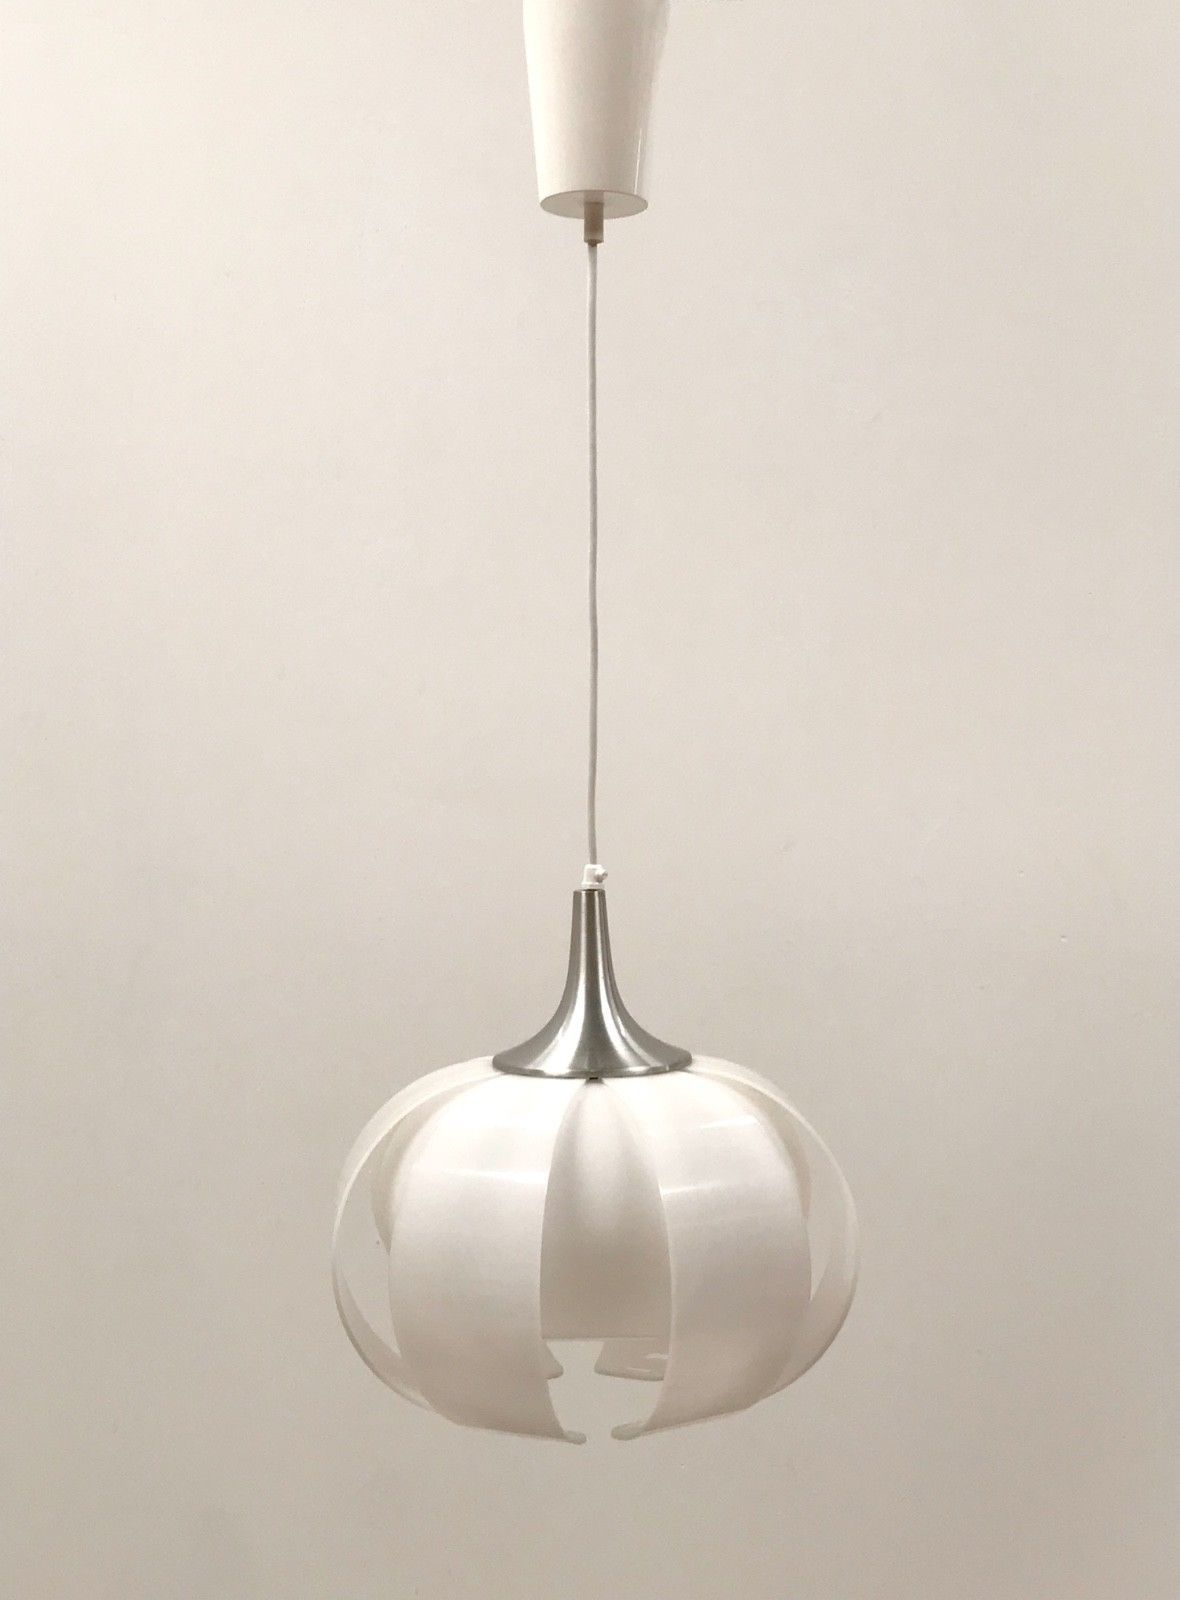 60s 70s Stylsh Funky Vintage Retro Danish Style Onion Shape Perspex Ceiling Lamp